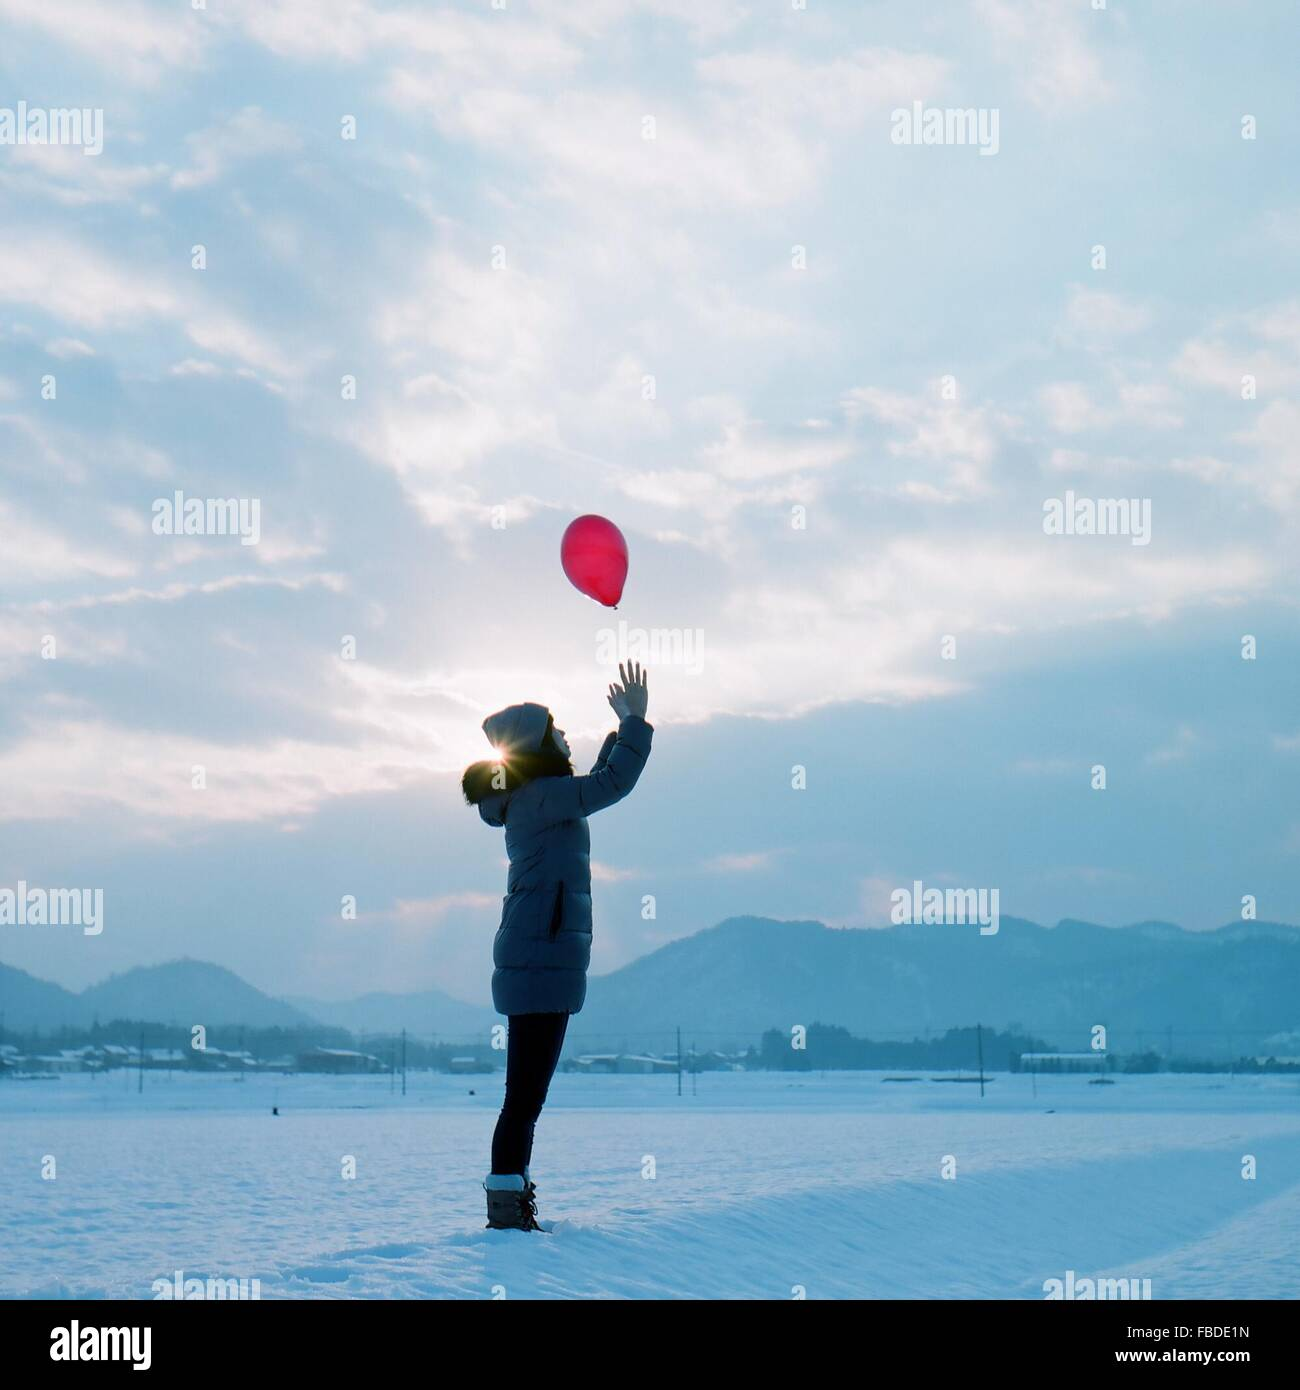 Side View Of Girl In Warm Clothing Catching Red Balloon While Standing On Snowy Field - Stock Image